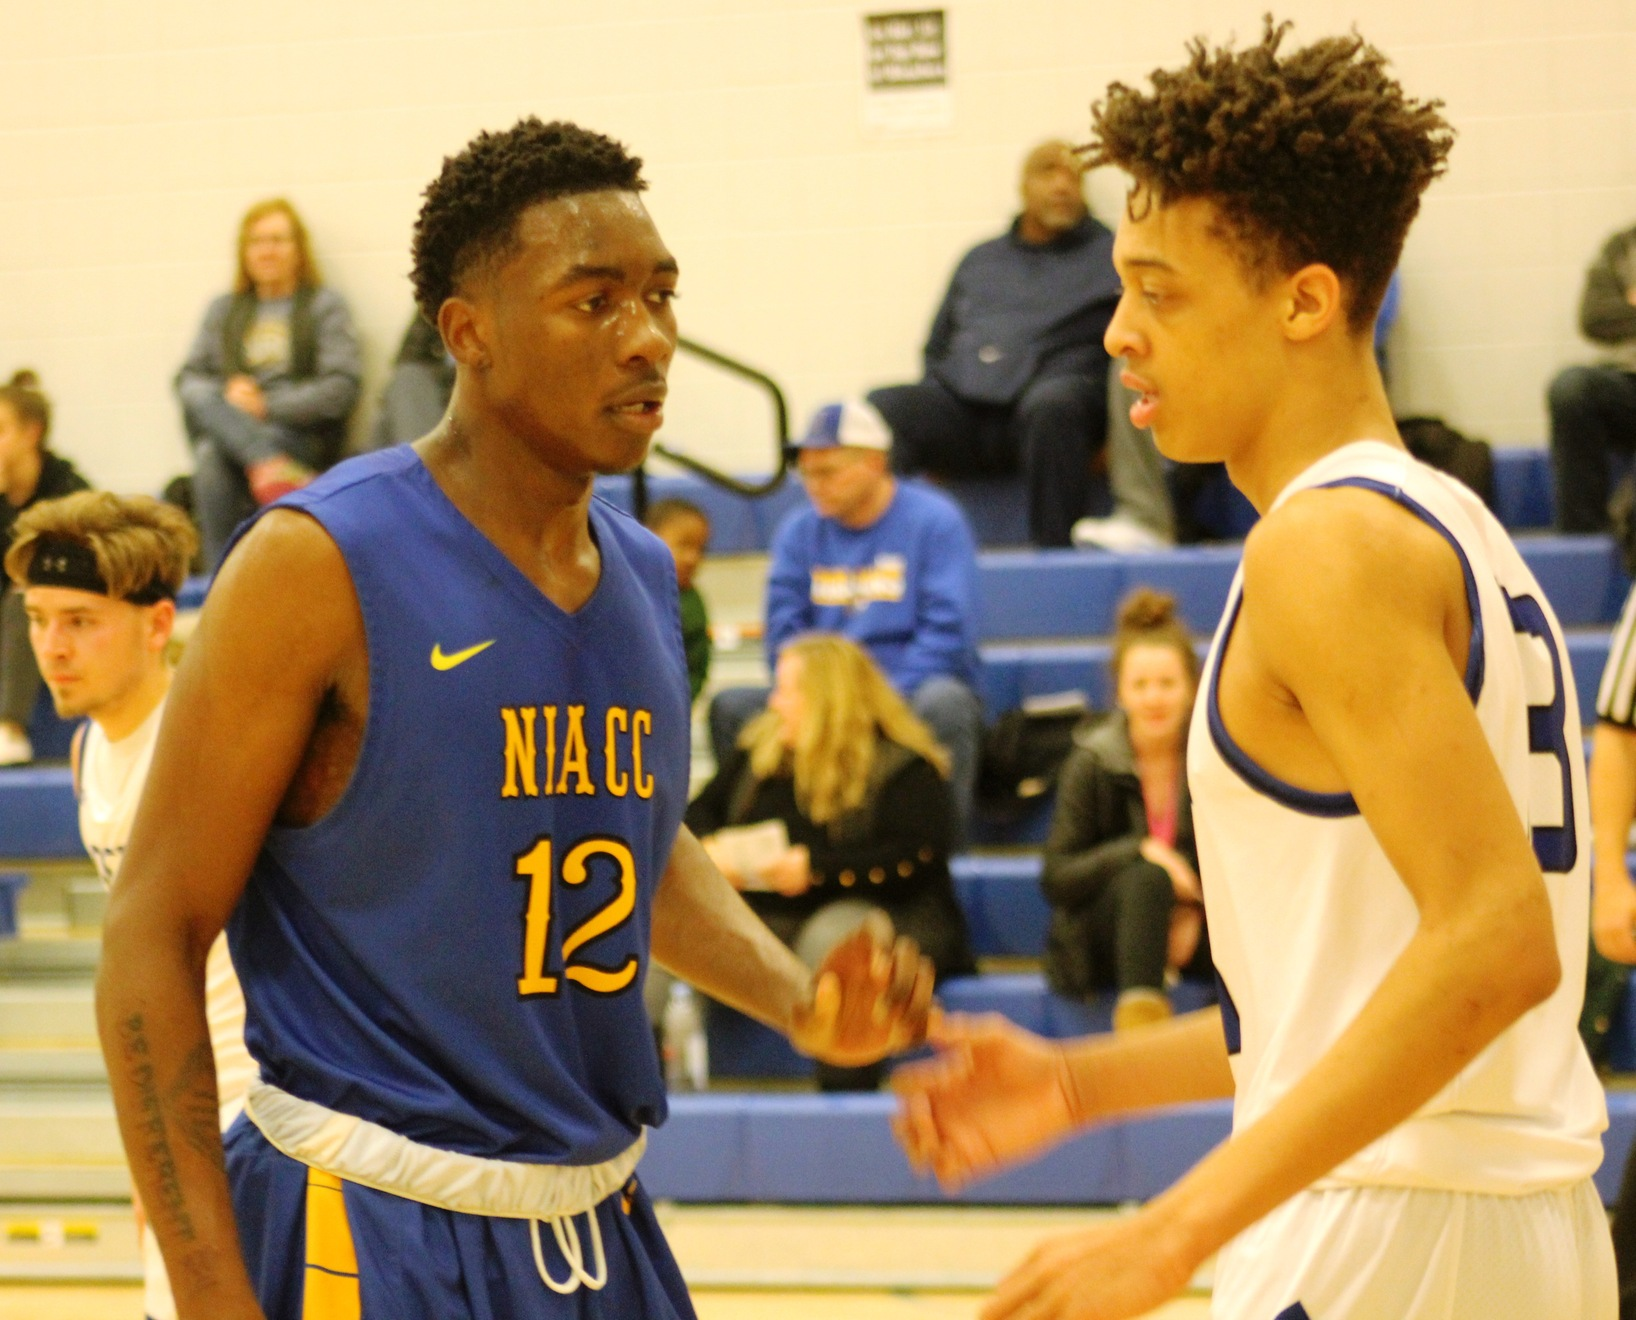 NIACC's Wendell Matthews is the NJCAA Division II player of the week for the week of Nov. 26-Dec. 2.